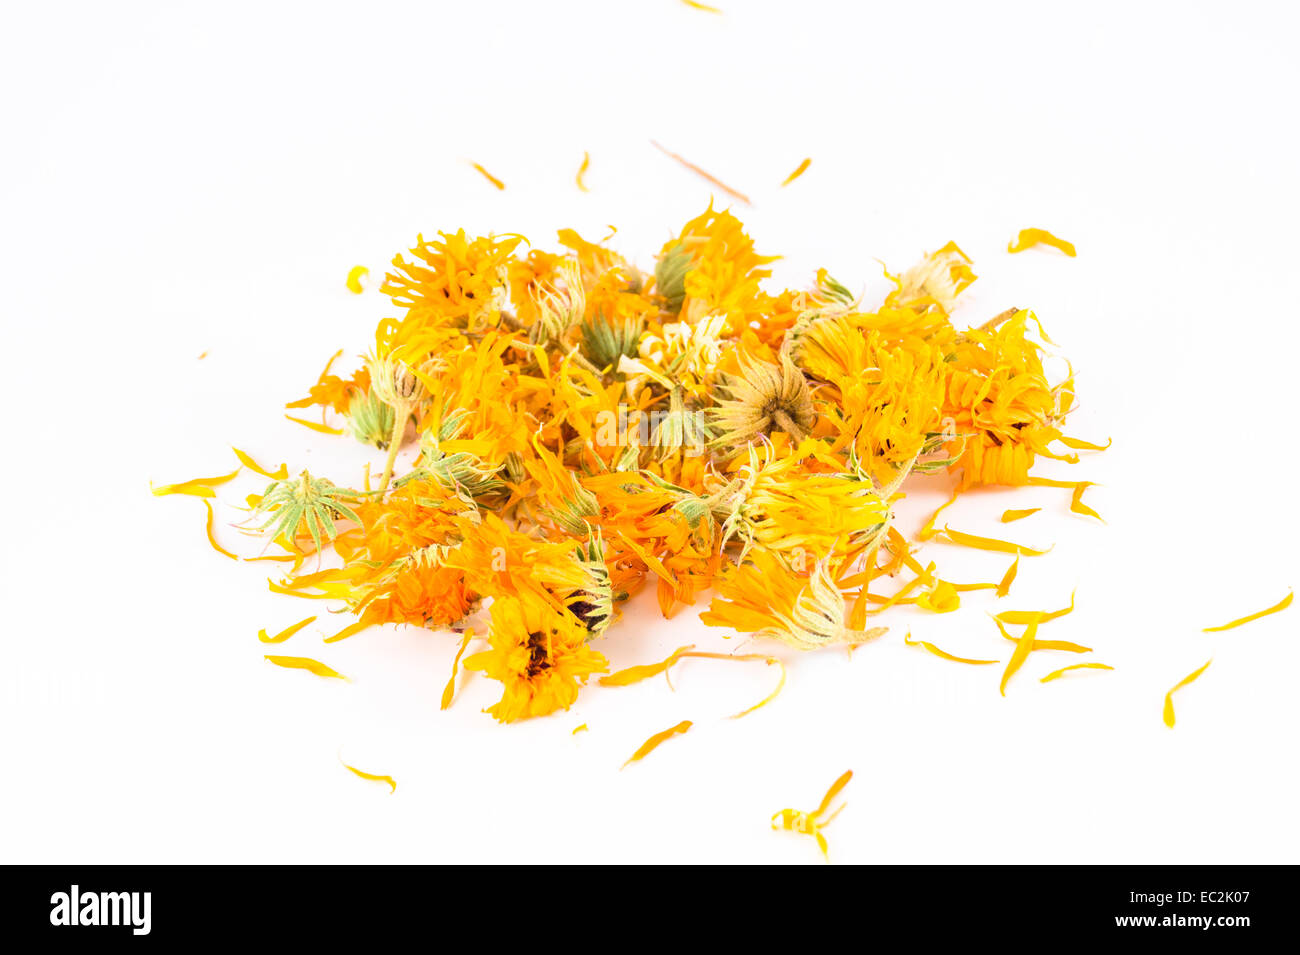 Calendula officinalis in white background - Stock Image